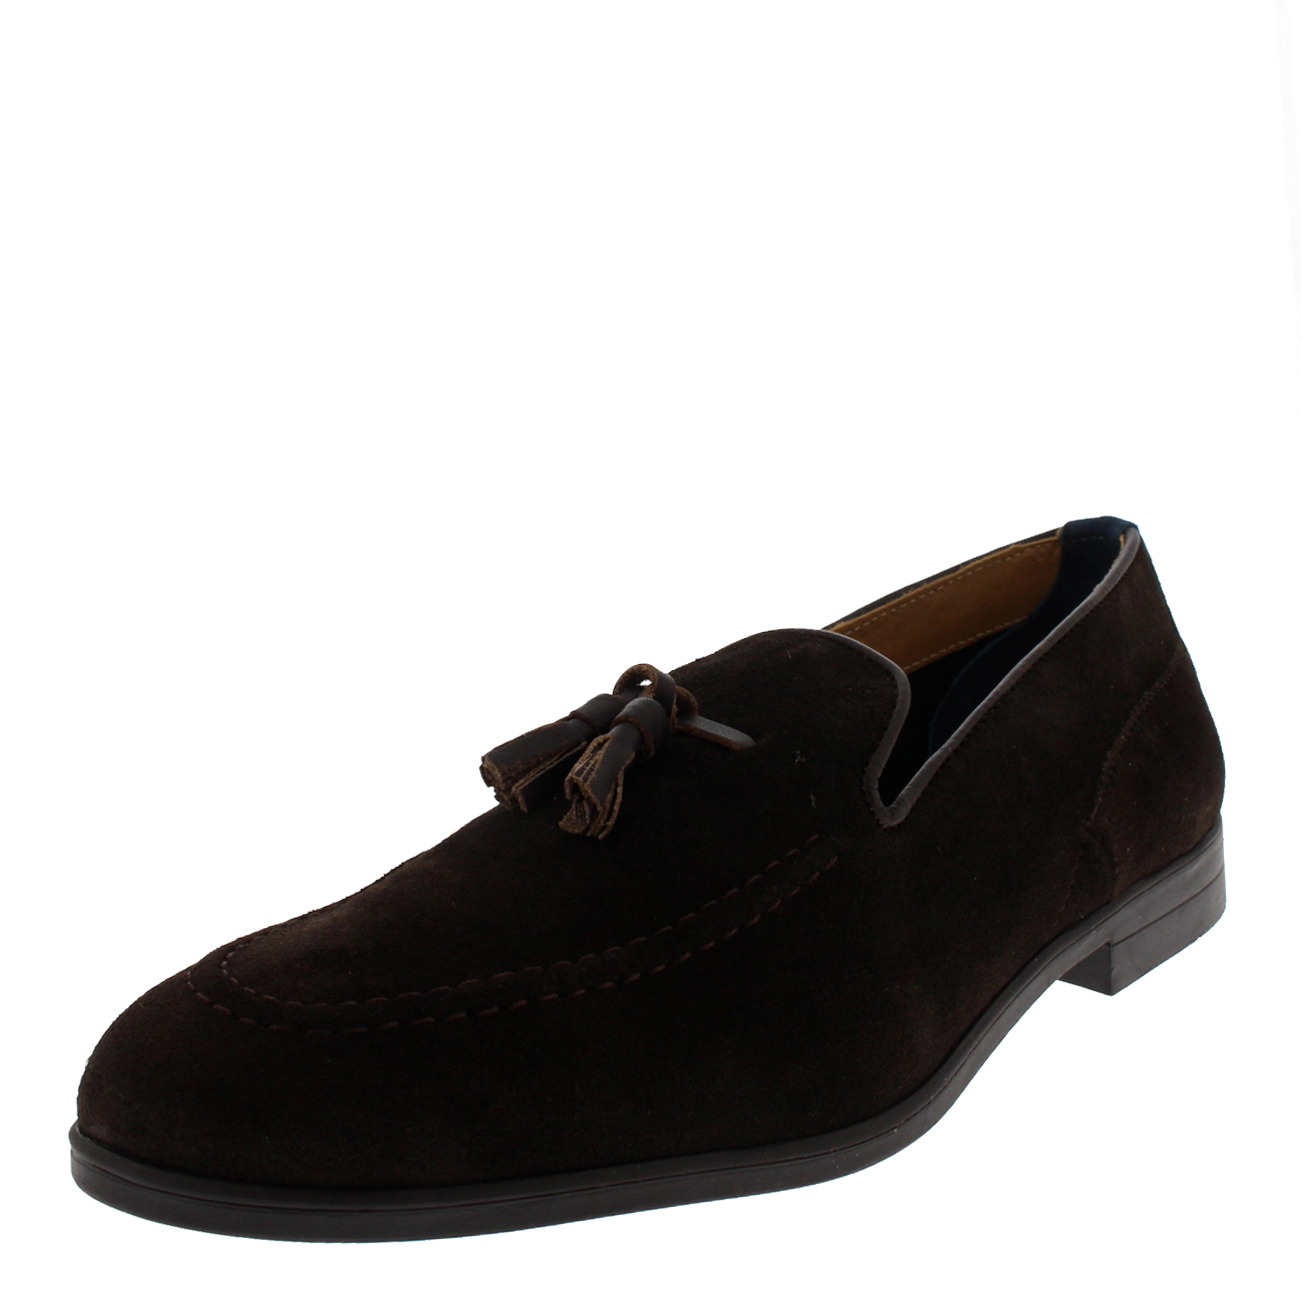 Uomo H By Hudson Office Dickson Loafer Smart Flat Office Hudson Work Casual Suede Schuhe US 7-13 f56d82